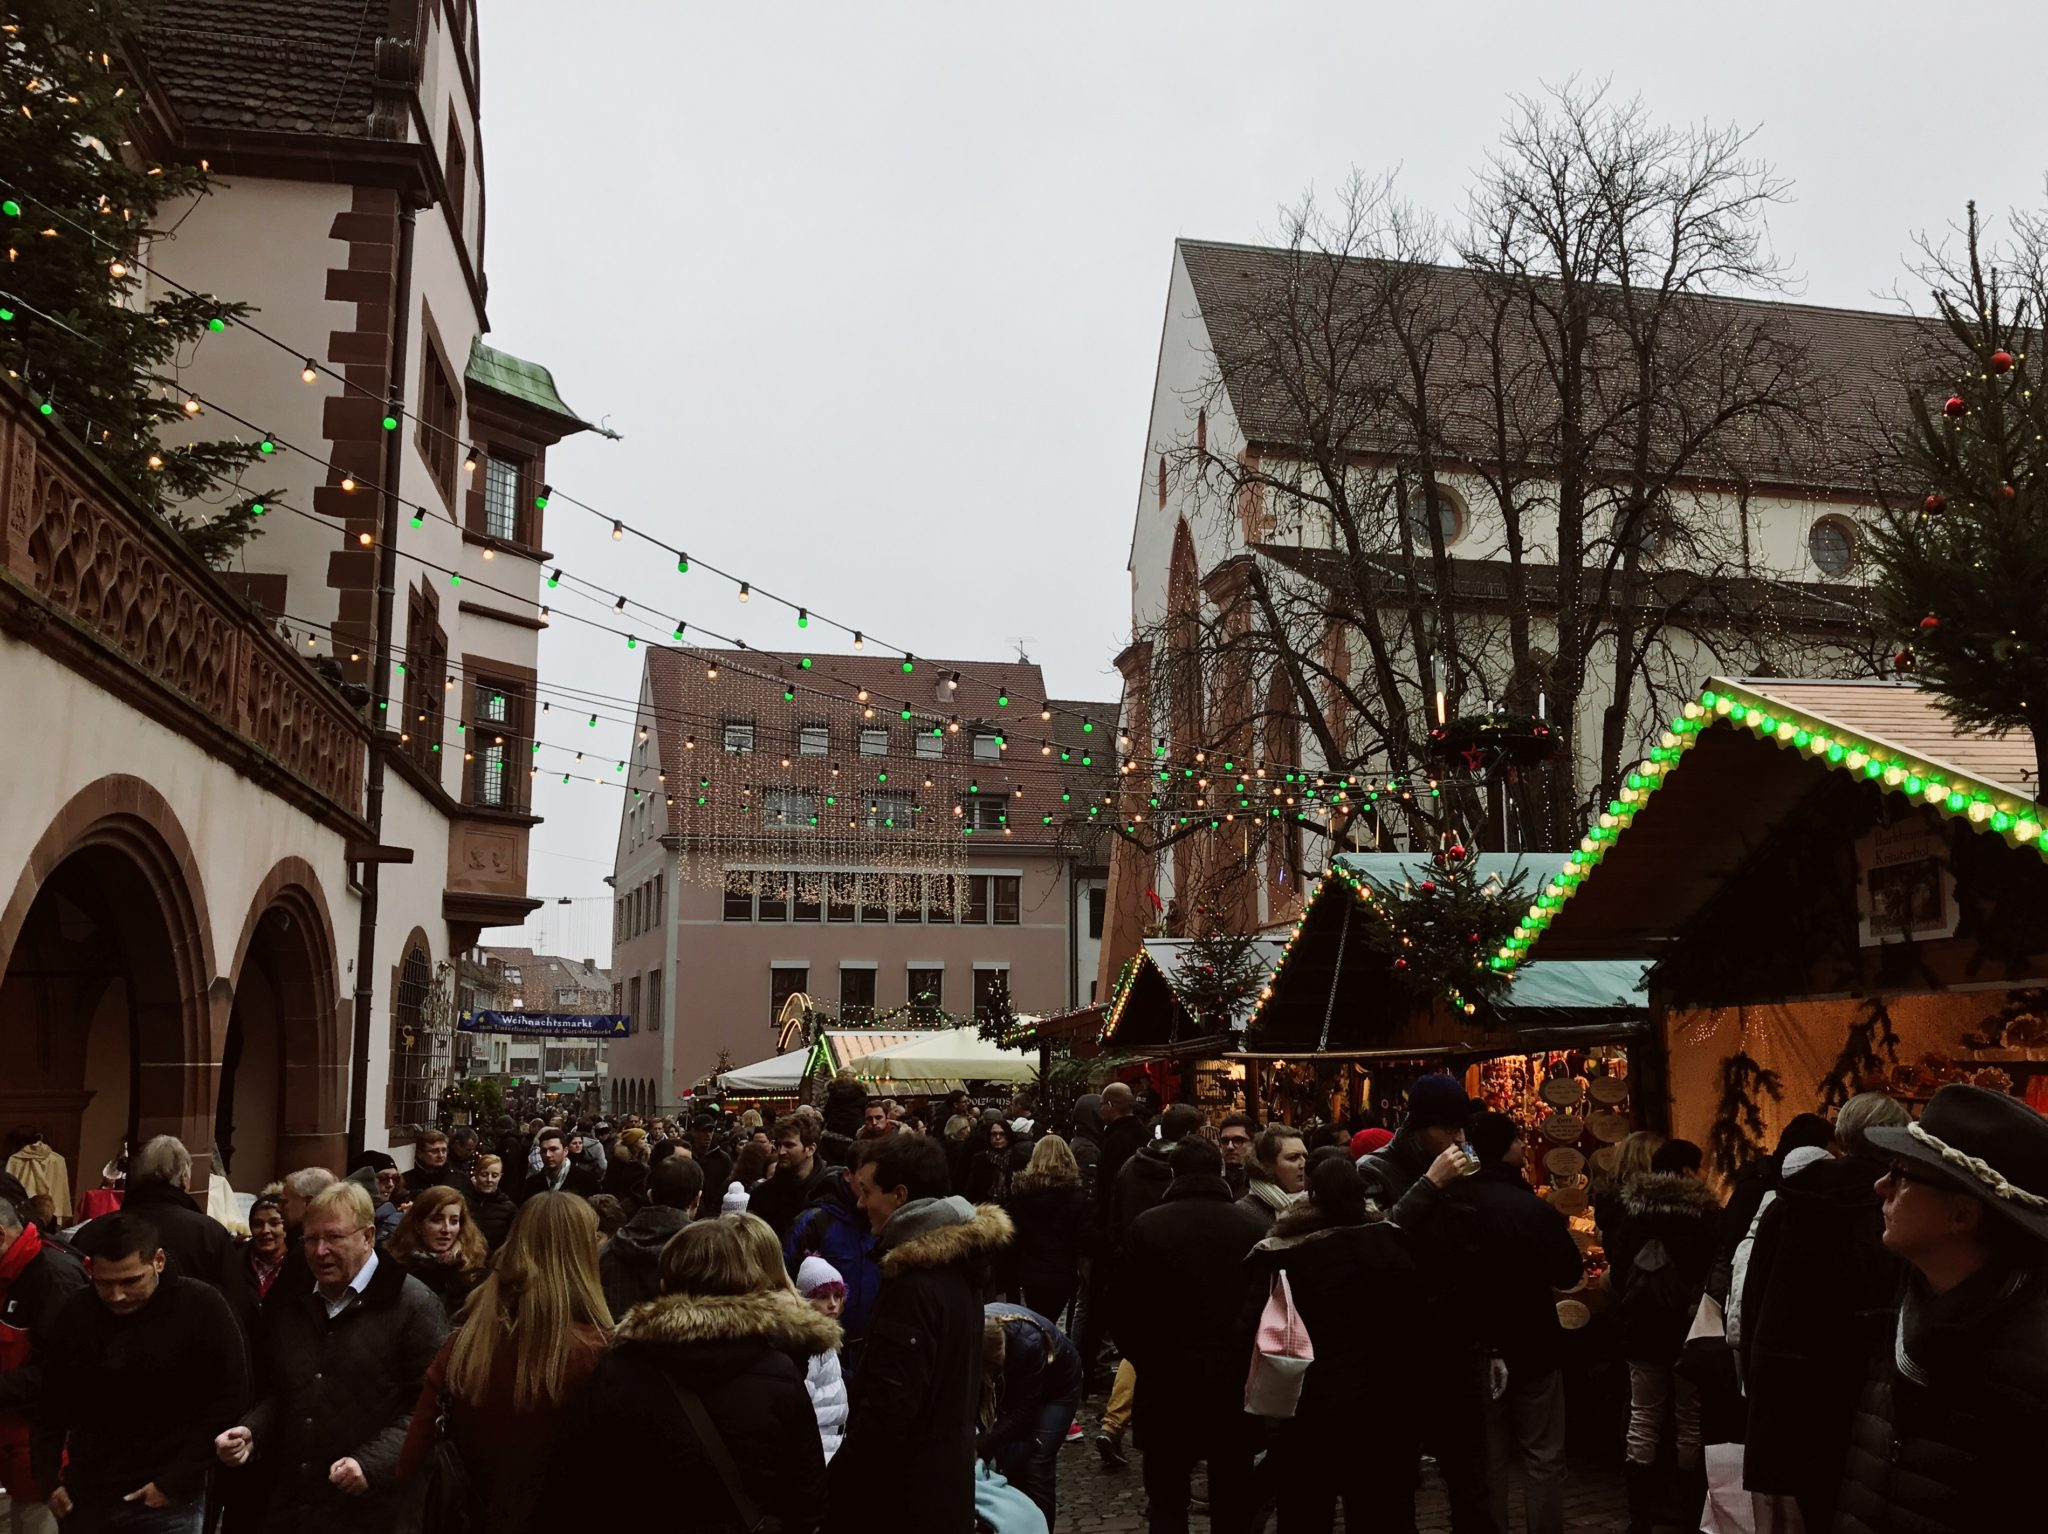 Christmas Market, Freiburg, Black Forest, Germany